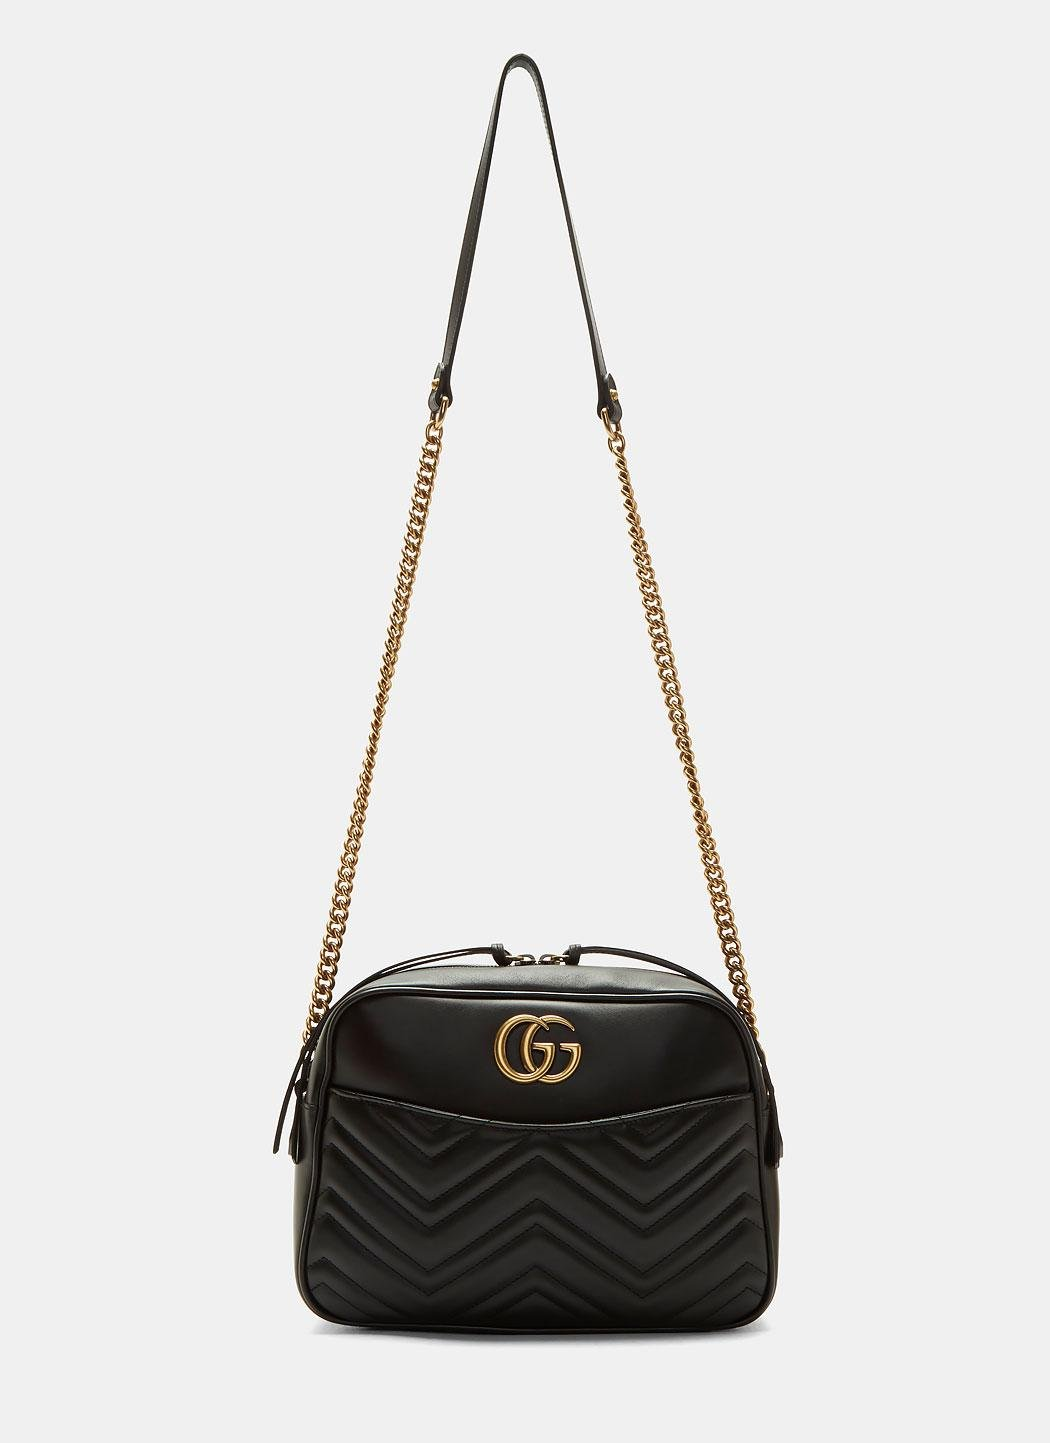 b92574449f05 Gucci Gg Marmont Matelassé Small Shoulder Bag In Black in Black - Lyst